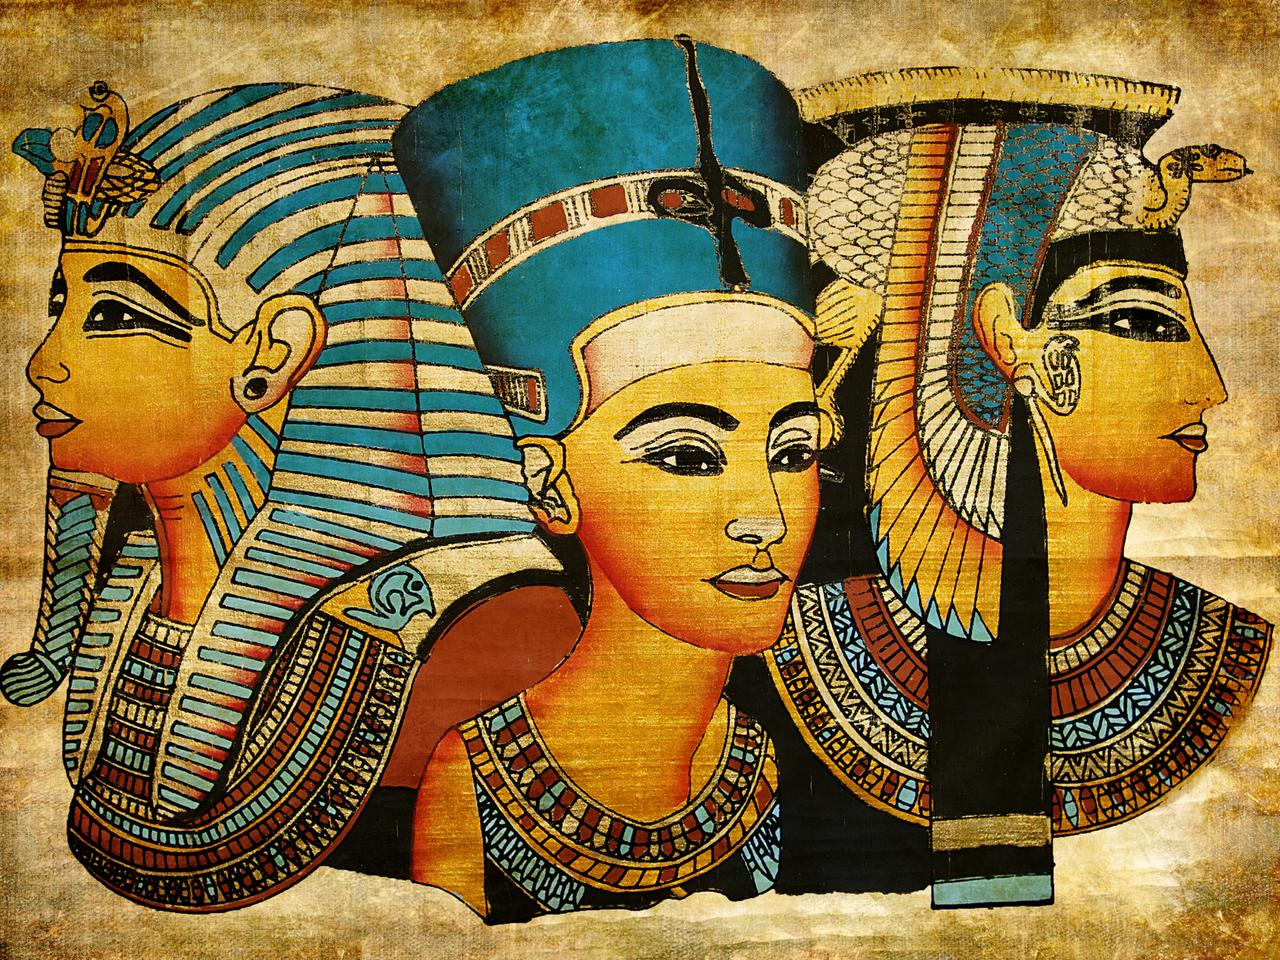 Both Genders Wore Make-Up | 8 Amazing Facts About Ancient Egypt | Brain Berries